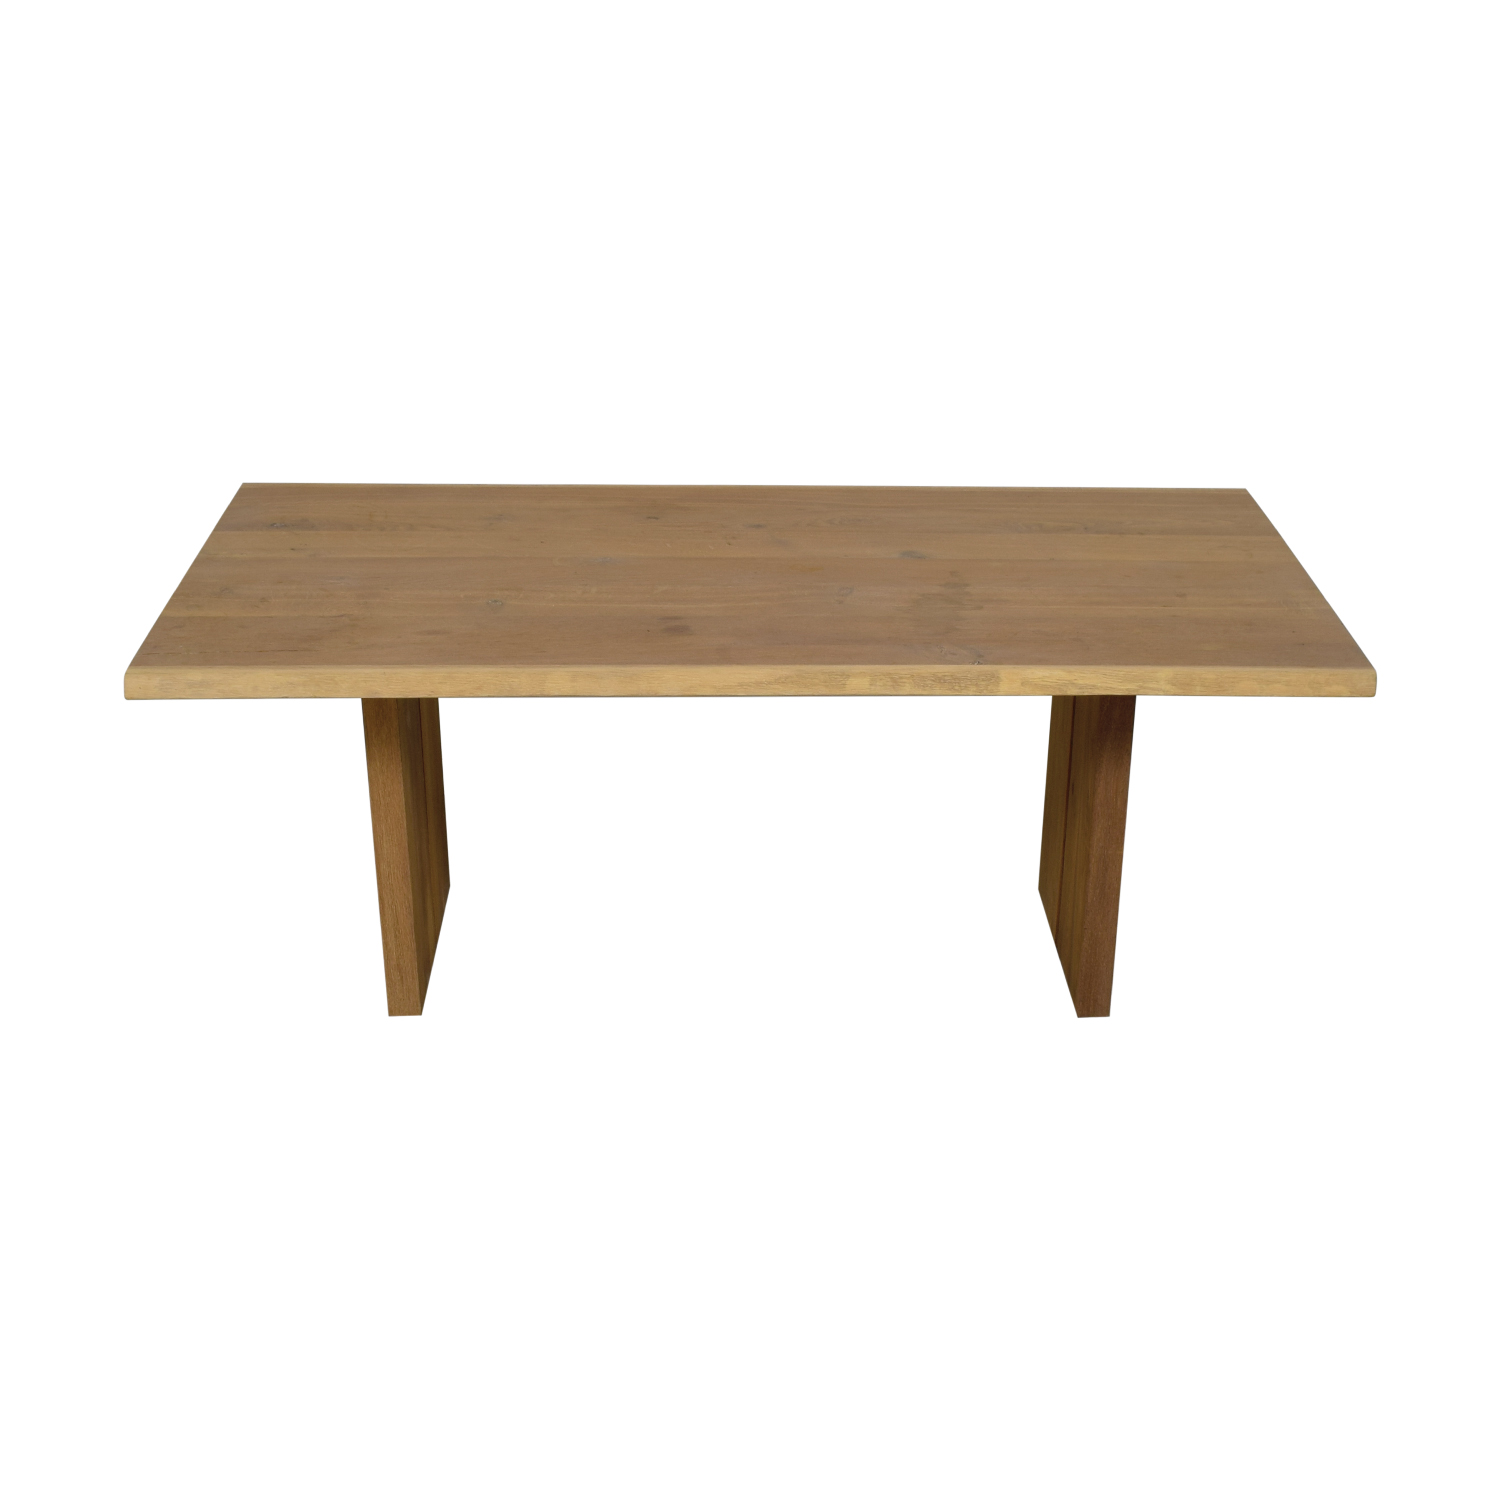 Restoration Hardware Restoration Hardware Natural Rustic Dining Table nj